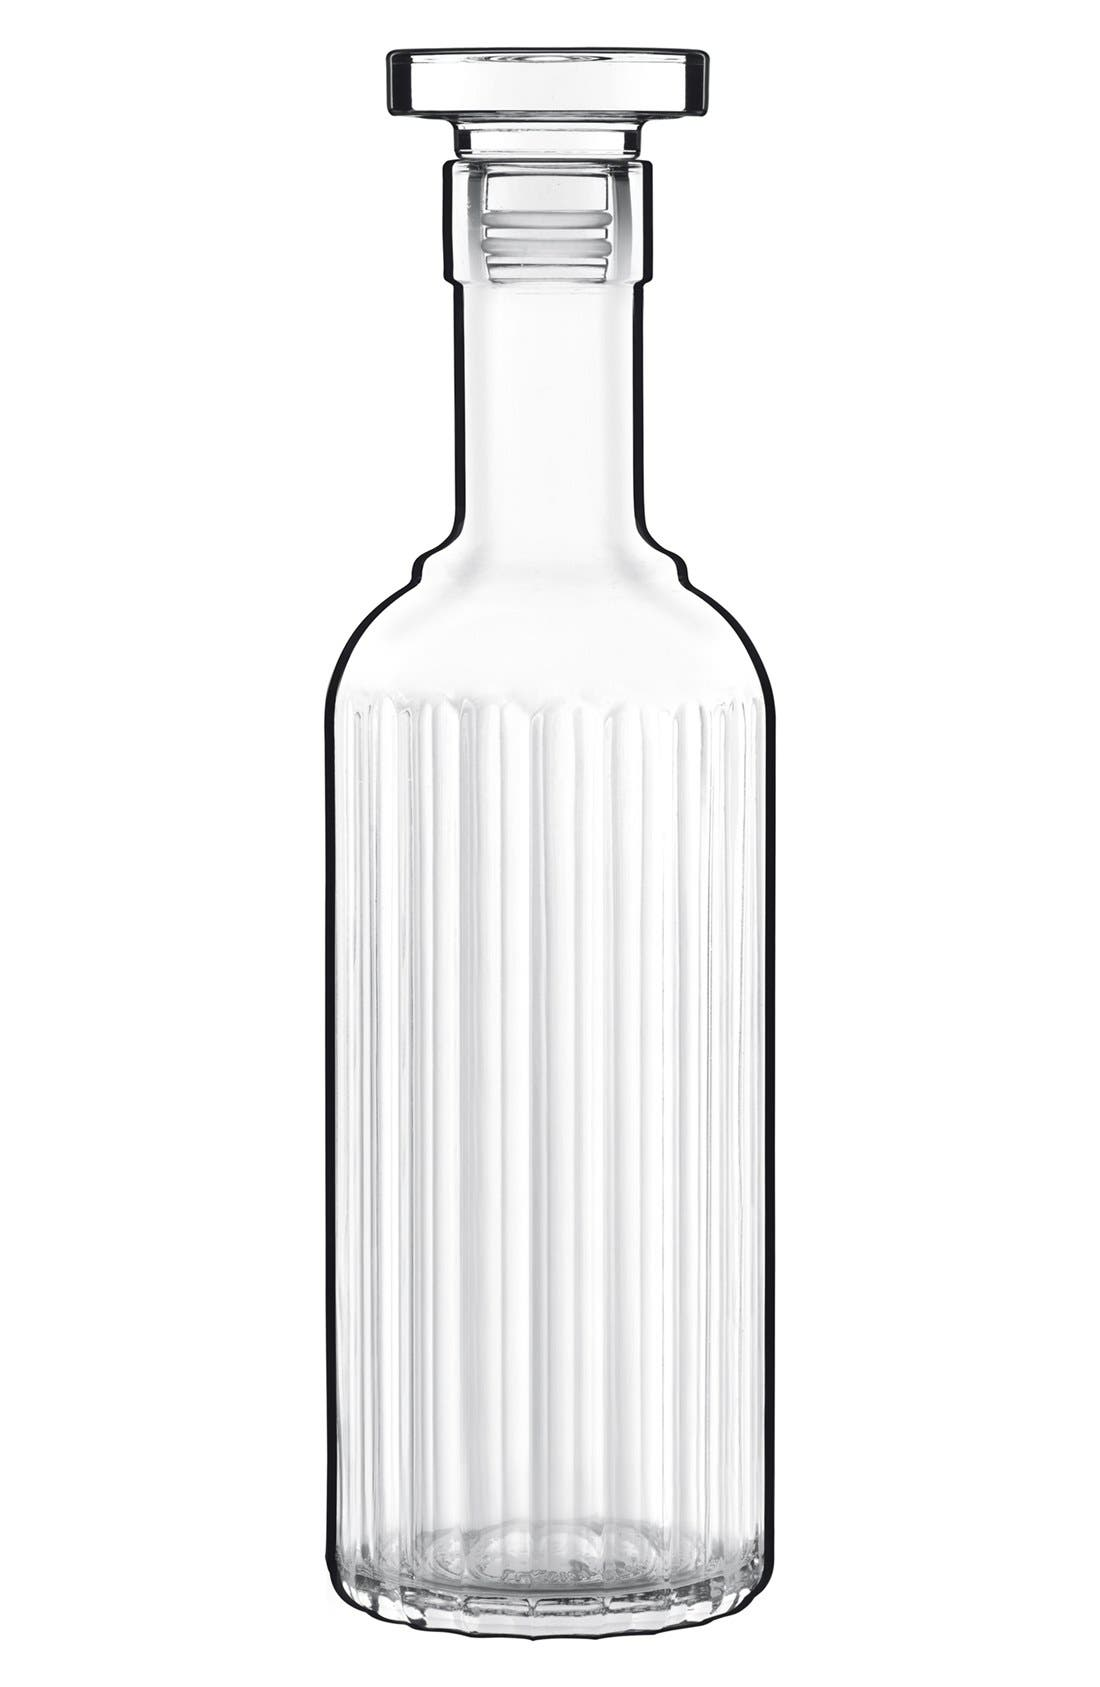 'Bach' Spirits Bottle,                             Main thumbnail 1, color,                             White